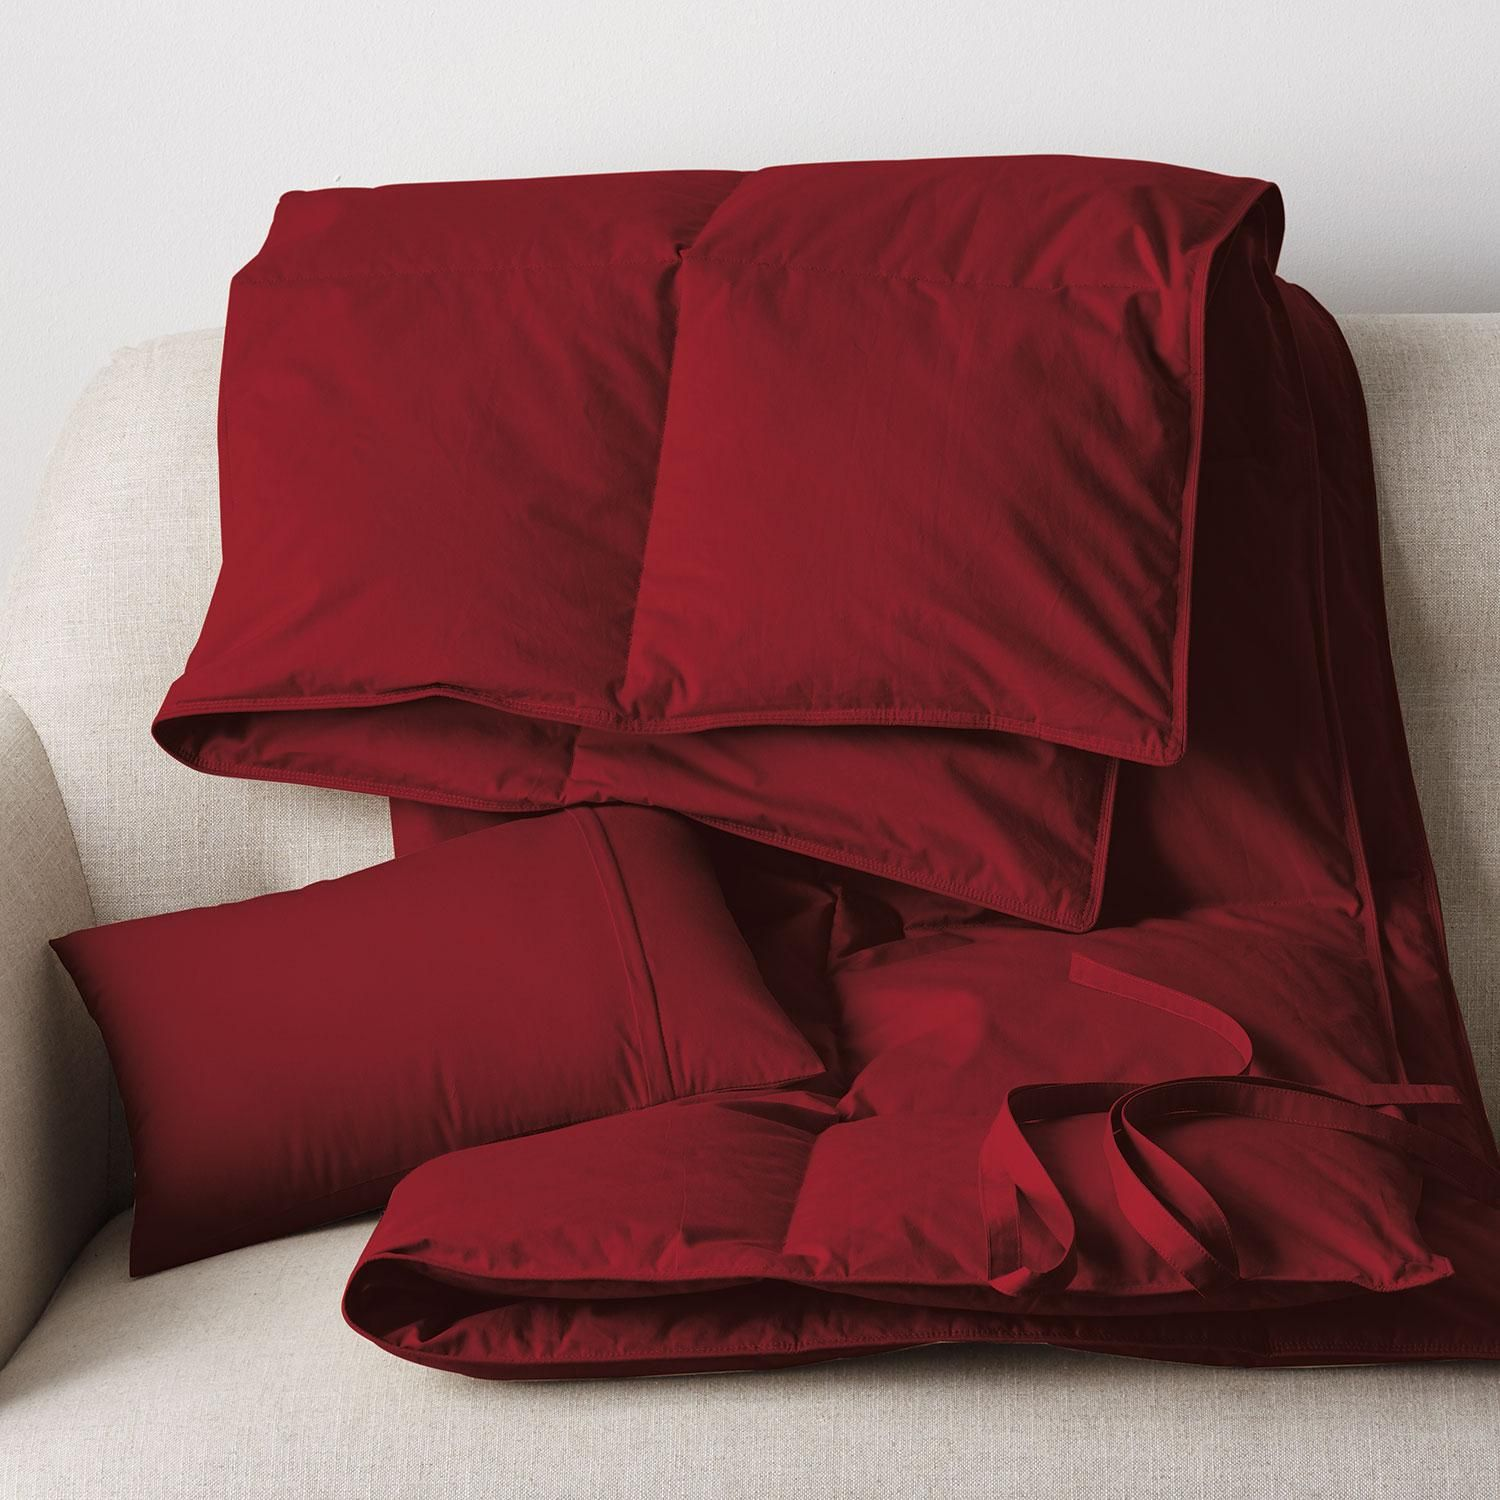 LoftAire Travel Throw at The Company Store Bedding